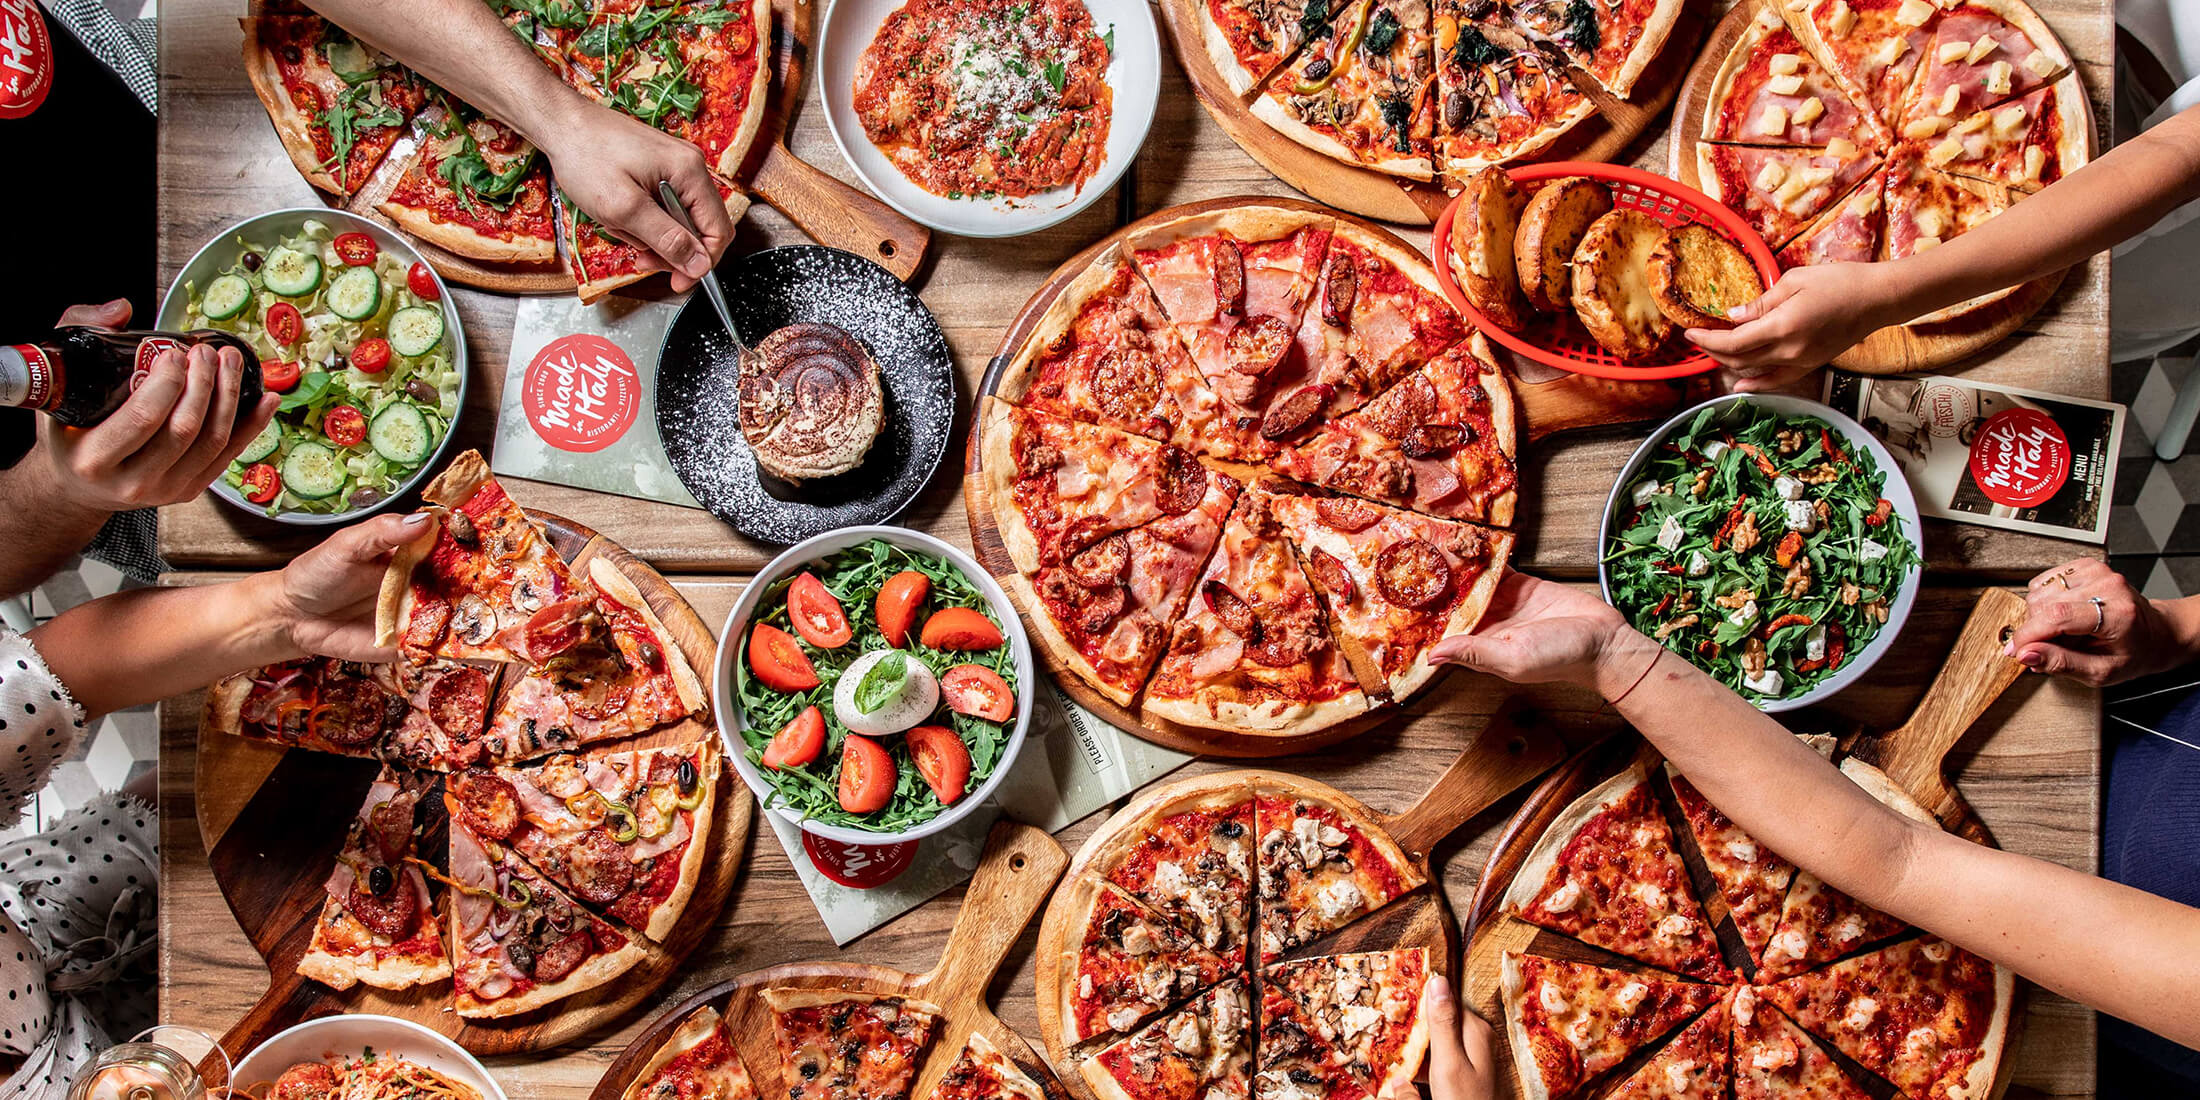 Made in Italy is an Italian restaurant in Rose Bay serving pizza and pasta including take away.